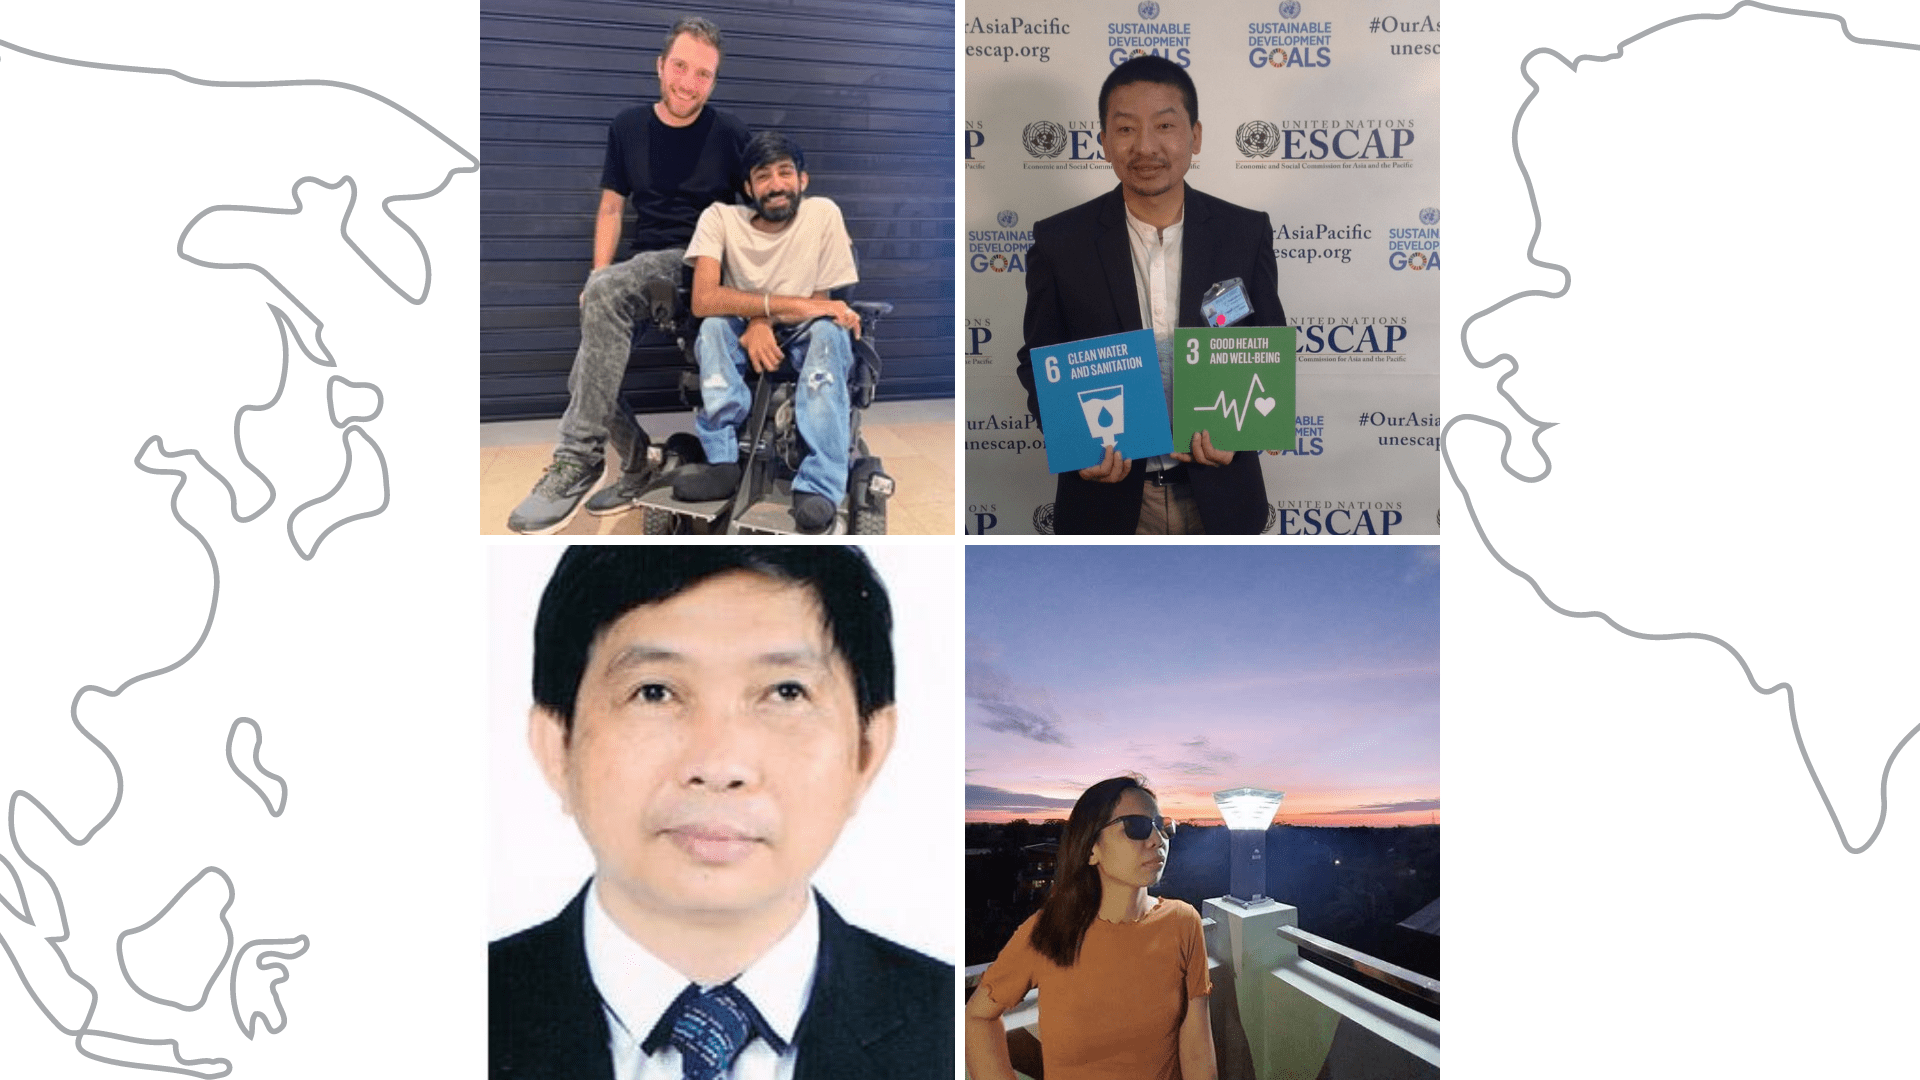 Leaders with Disabilities in Asia Join the Billion Strong Movement